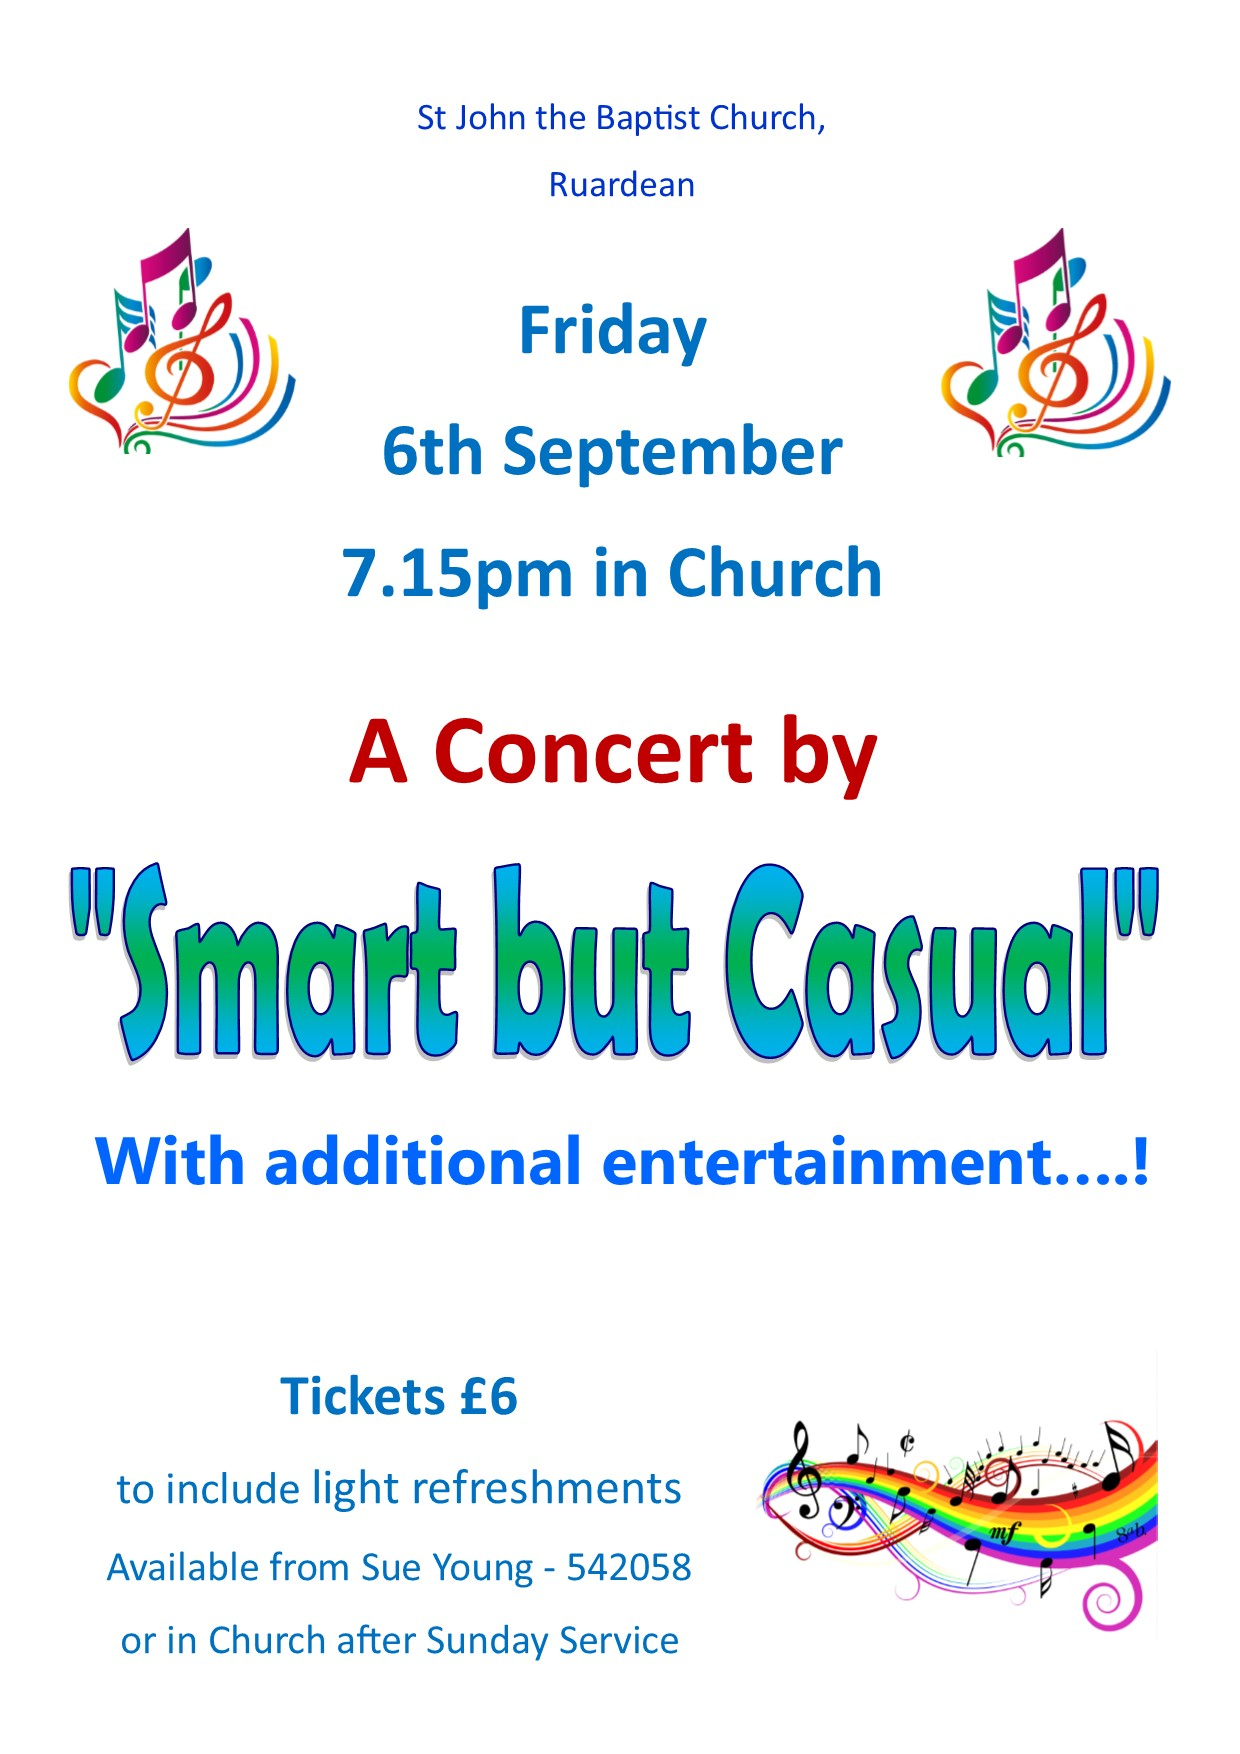 Smart but Casual Poster 6th September 2019